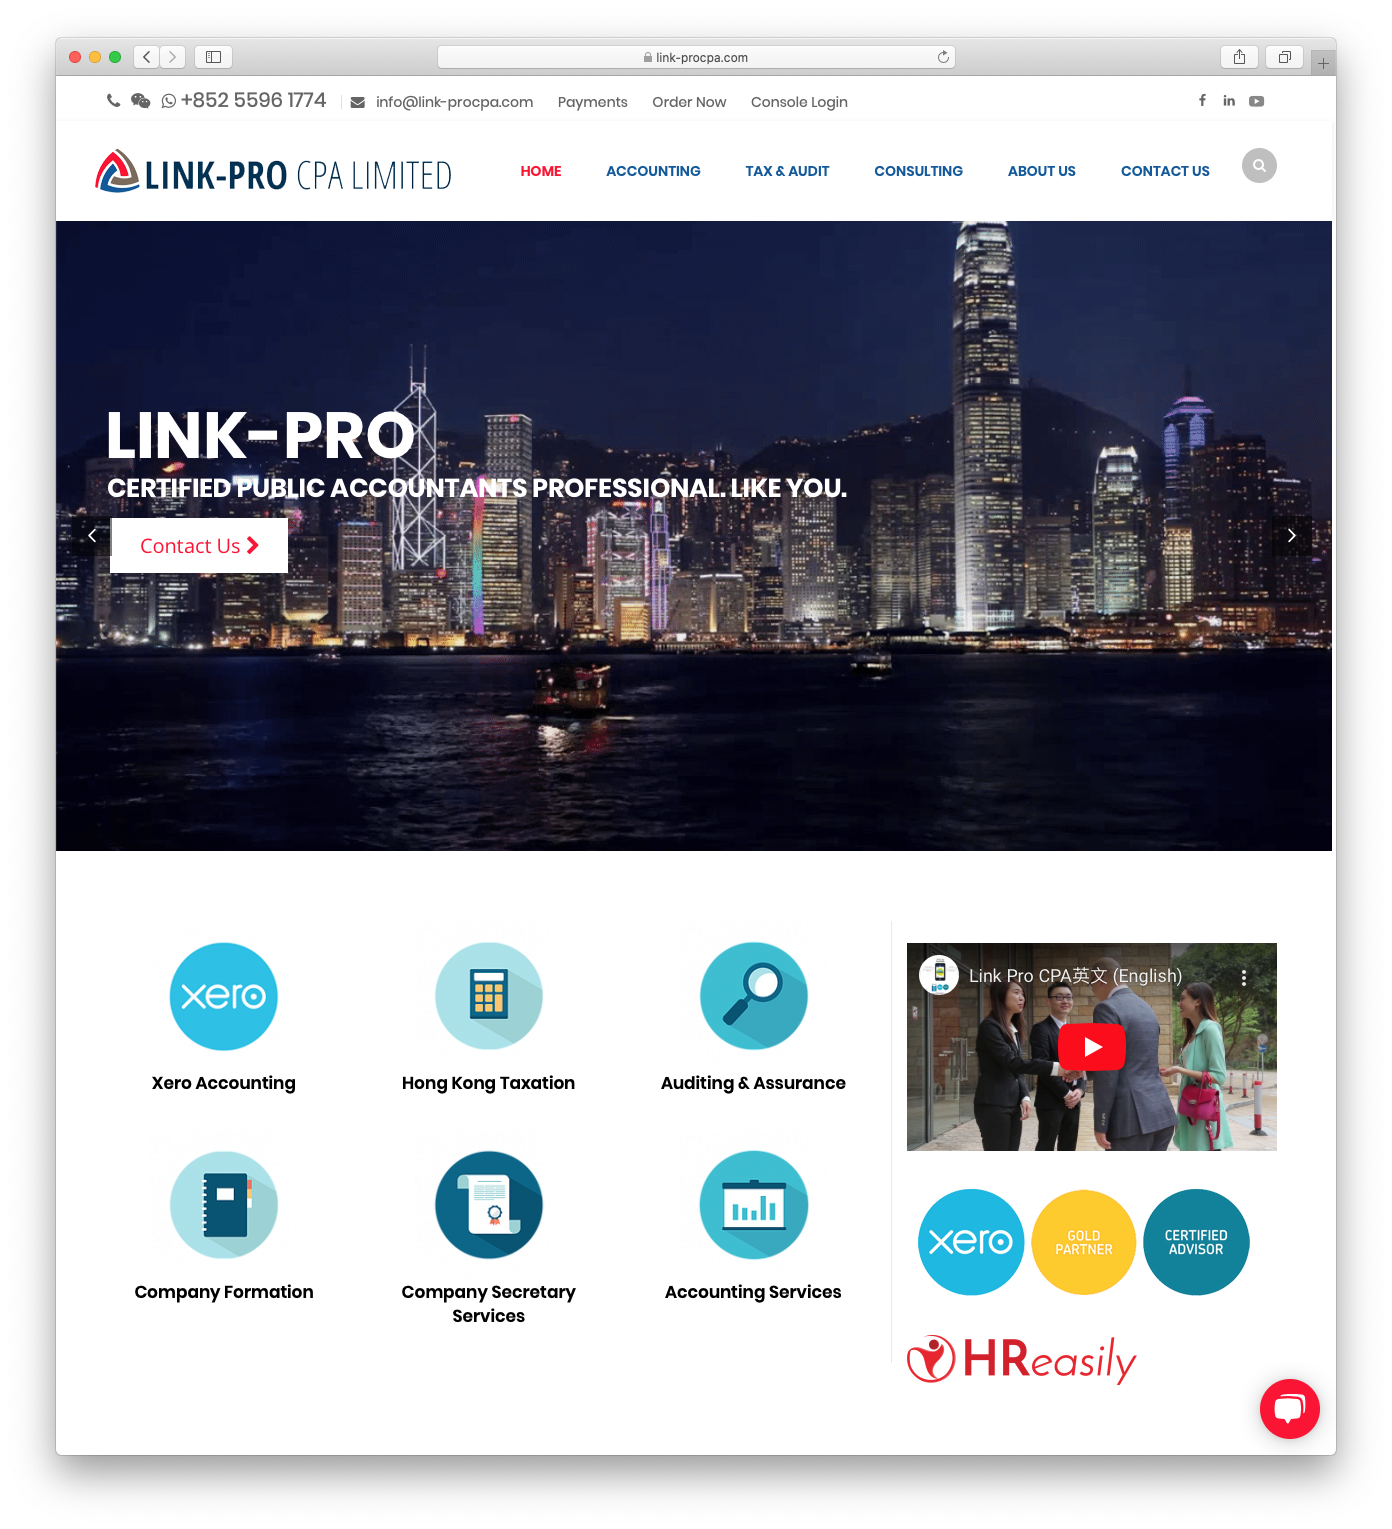 Link-Pro CPA Limited